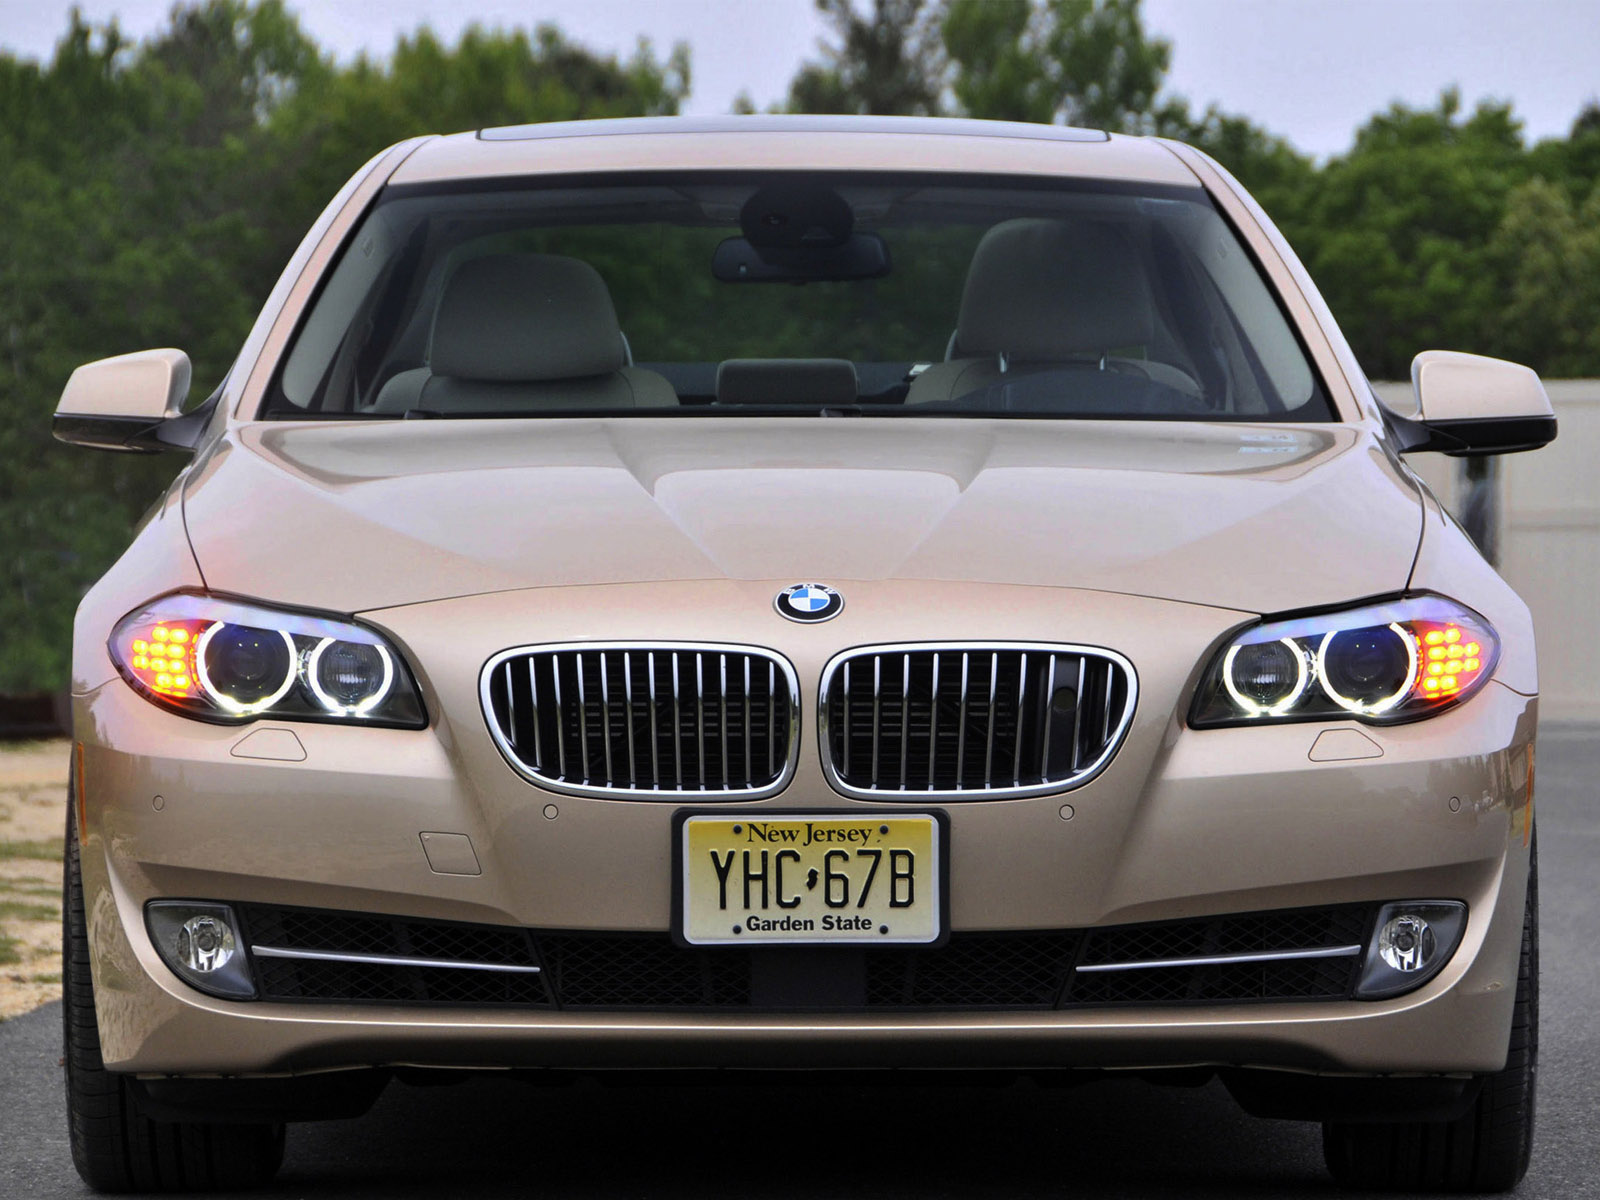 bmw 5 series 550i sedan usa f10 2010 bmw 5 series 550i sedan usa f10 2010 photo 04 car in. Black Bedroom Furniture Sets. Home Design Ideas